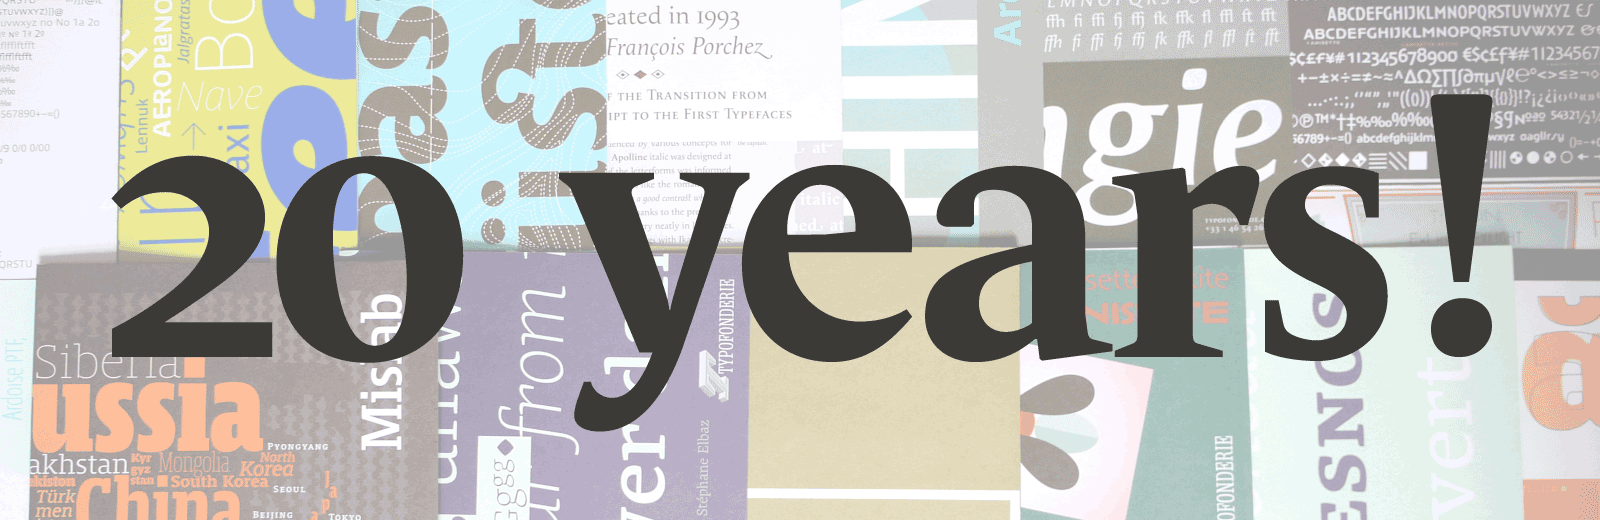 The Typofonderie type specimen collection